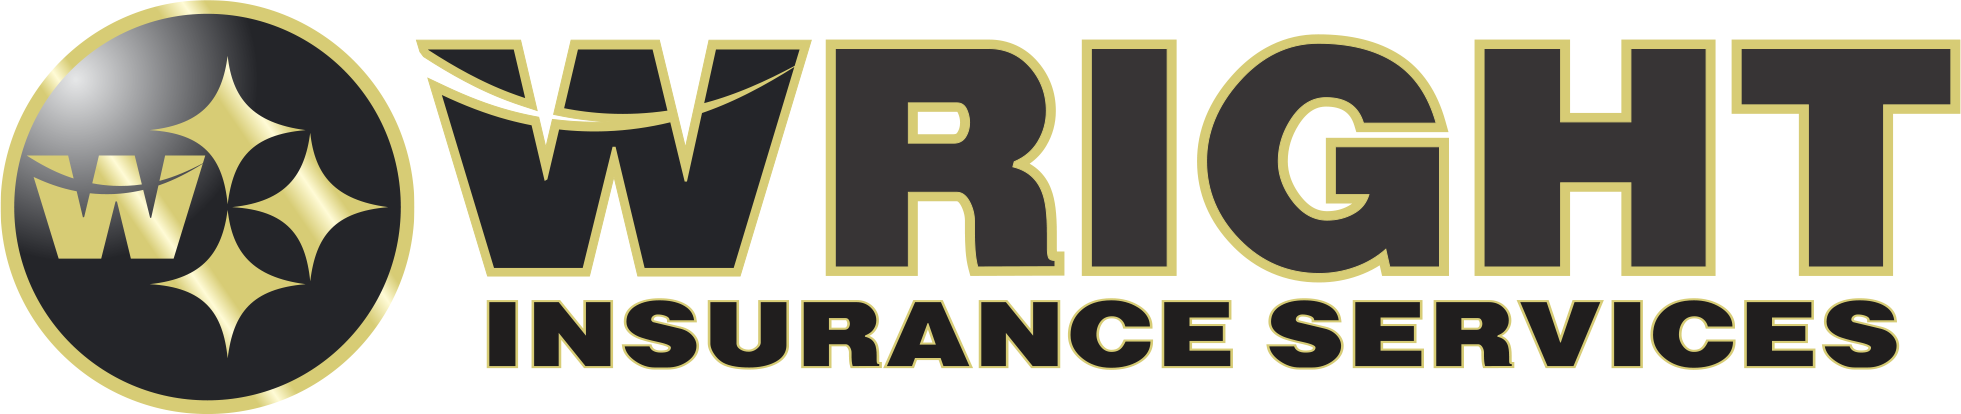 Wright Insurance Services